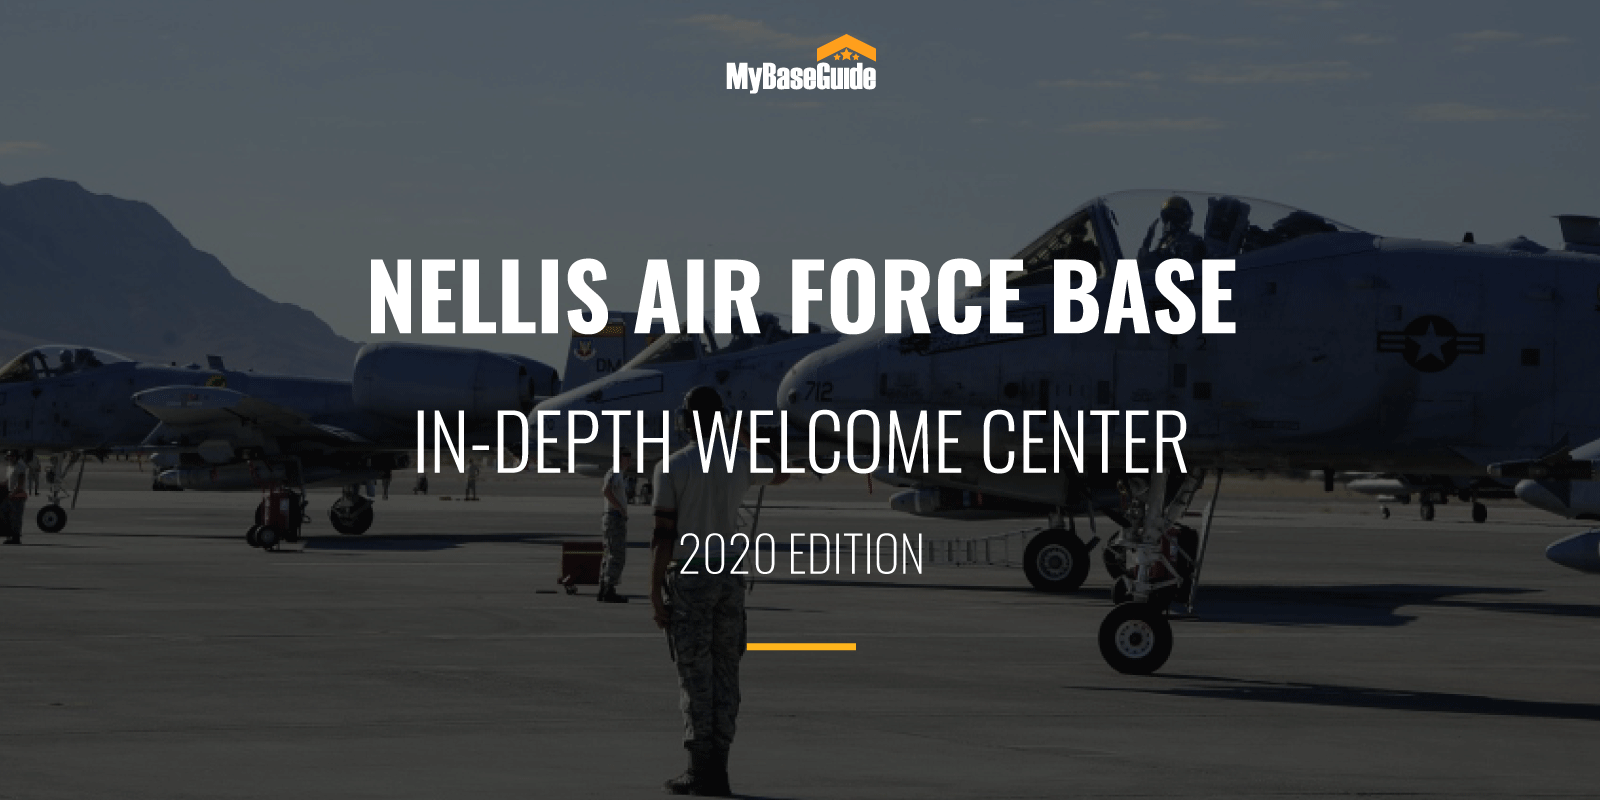 Nellis Air Force Base: In-Depth Welcome Center